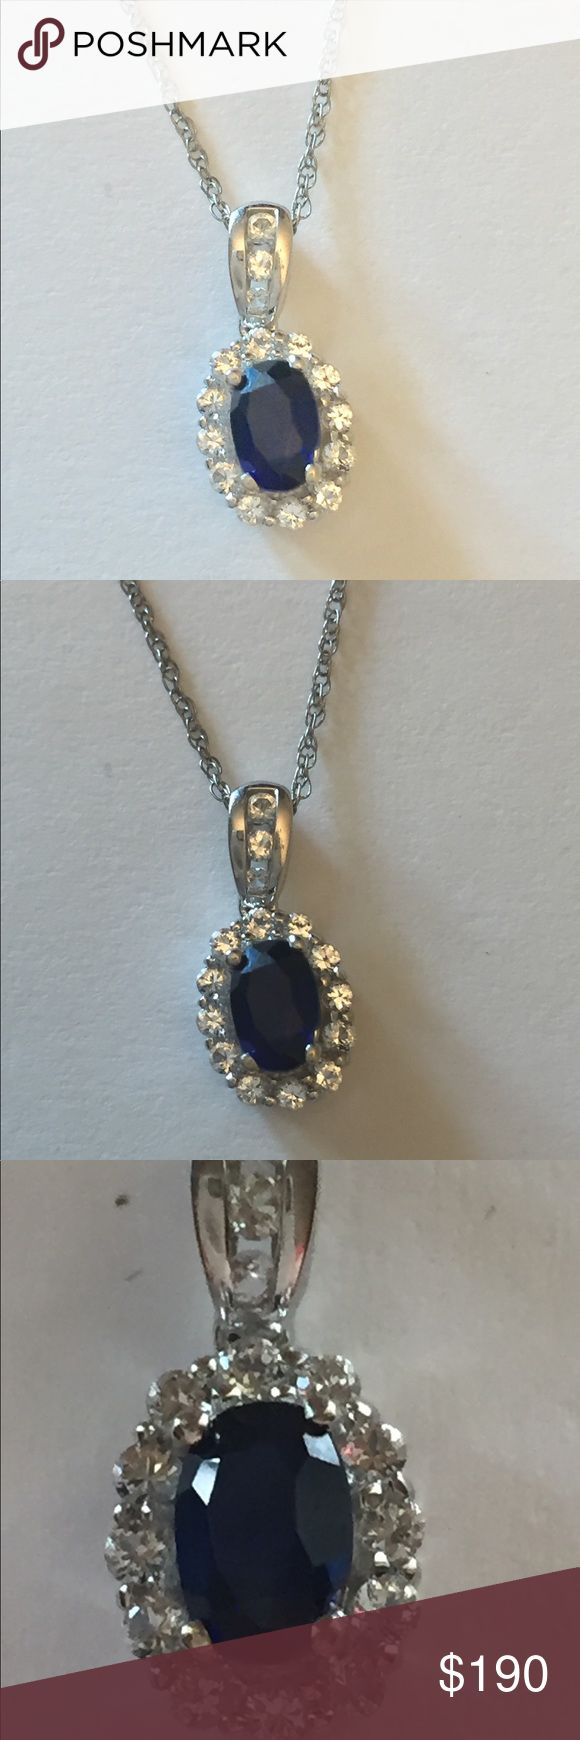 """14 kt necklace with sapphire & Swarovski crystals Brand new made by me in my studio 14 kt white gold (stamped inside the pendant but couldn't get a clear close up, though I tried. See photos.) Genuine Swarovski crystals used in the halo surrounding the real blue sapphire. Chain is also 14 kt white gold (stamped on chain clasp.) 18 """" inch chain. 1/2 carat oval sapphire. Open link chain. Jewelry Necklaces"""